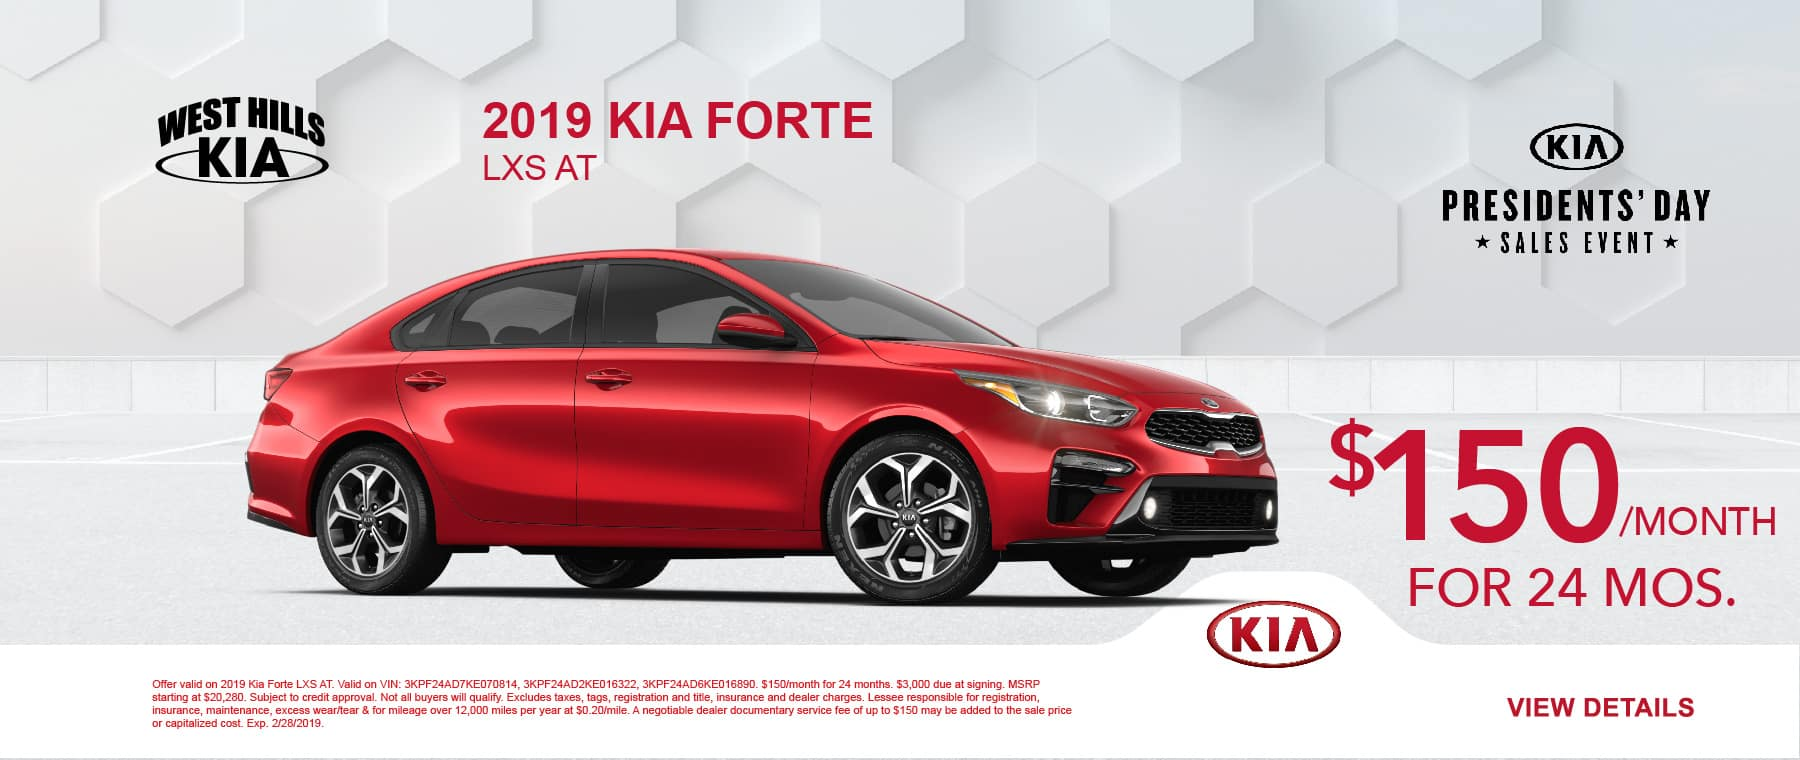 2019 Kia Forte LXS AT $150/month for 24 months    Offer valid on 2019 Kia Forte LXS AT. Valid on VIN: 3KPF24AD7KE070814, 3KPF24AD2KE016322, 3KPF24AD6KE016890. $150/month for 24 months. $3,000 due at signing. MSRP starting at $20,280. Subject to credit approval. Not all buyers will qualify. Excludes taxes, tags, registration and title, insurance and dealer charges. Lessee responsible for registration, insurance, maintenance, excess wear/tear & for mileage over 12,000 miles per year at $0.20/mile. A negotiable dealer documentary service fee of up to $150 may be added to the sale price or capitalized cost. Exp. 2/28/2019.